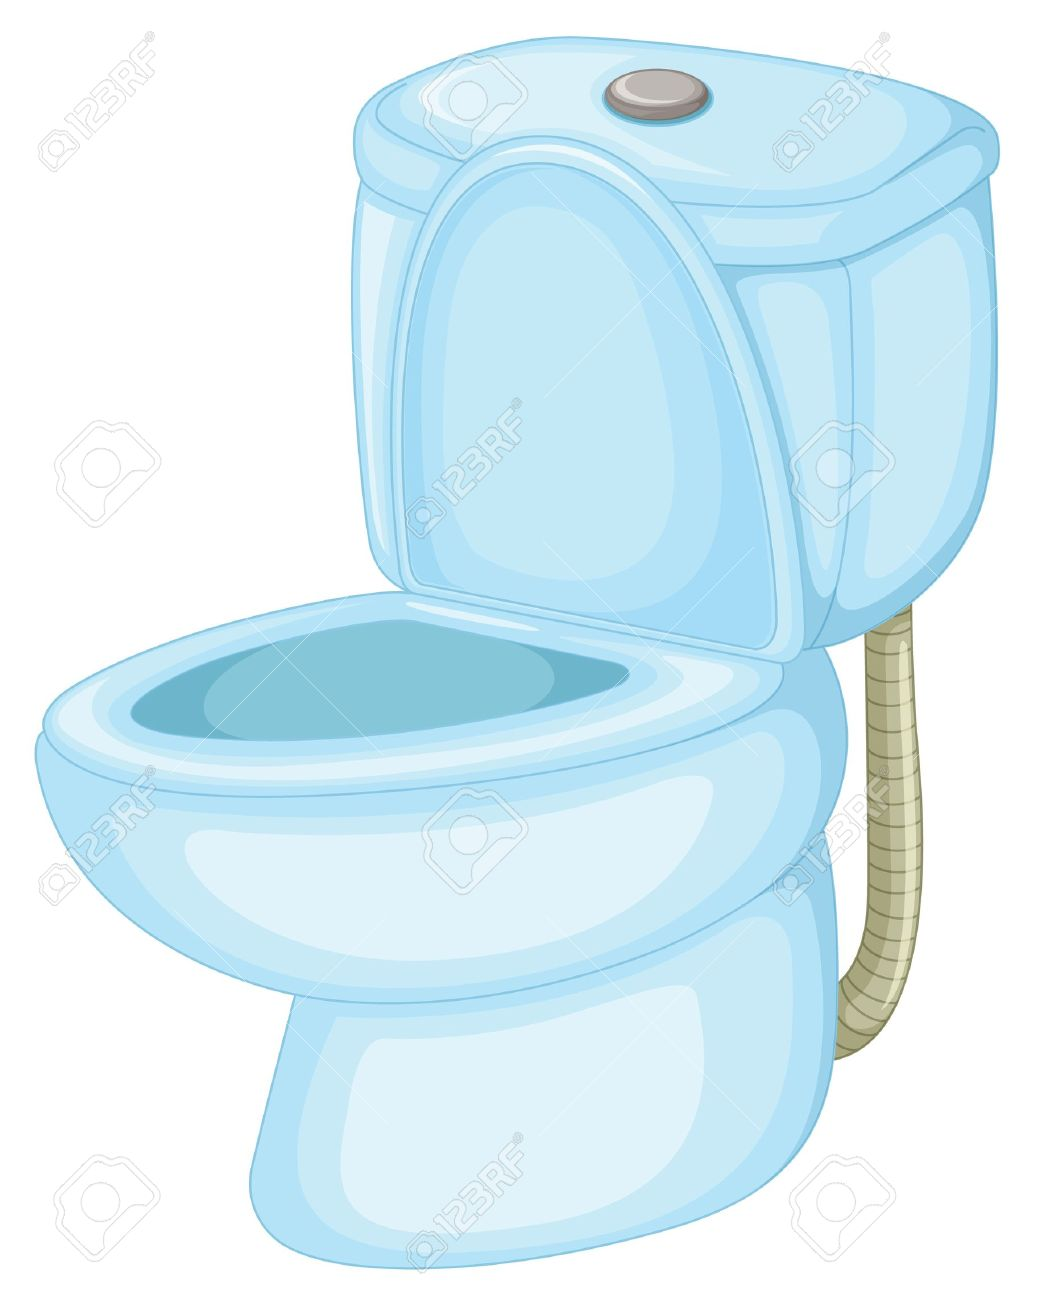 Illustration of an isolated toilet Stock Vector   13524501. Illustration Of An Isolated Toilet Royalty Free Cliparts  Vectors